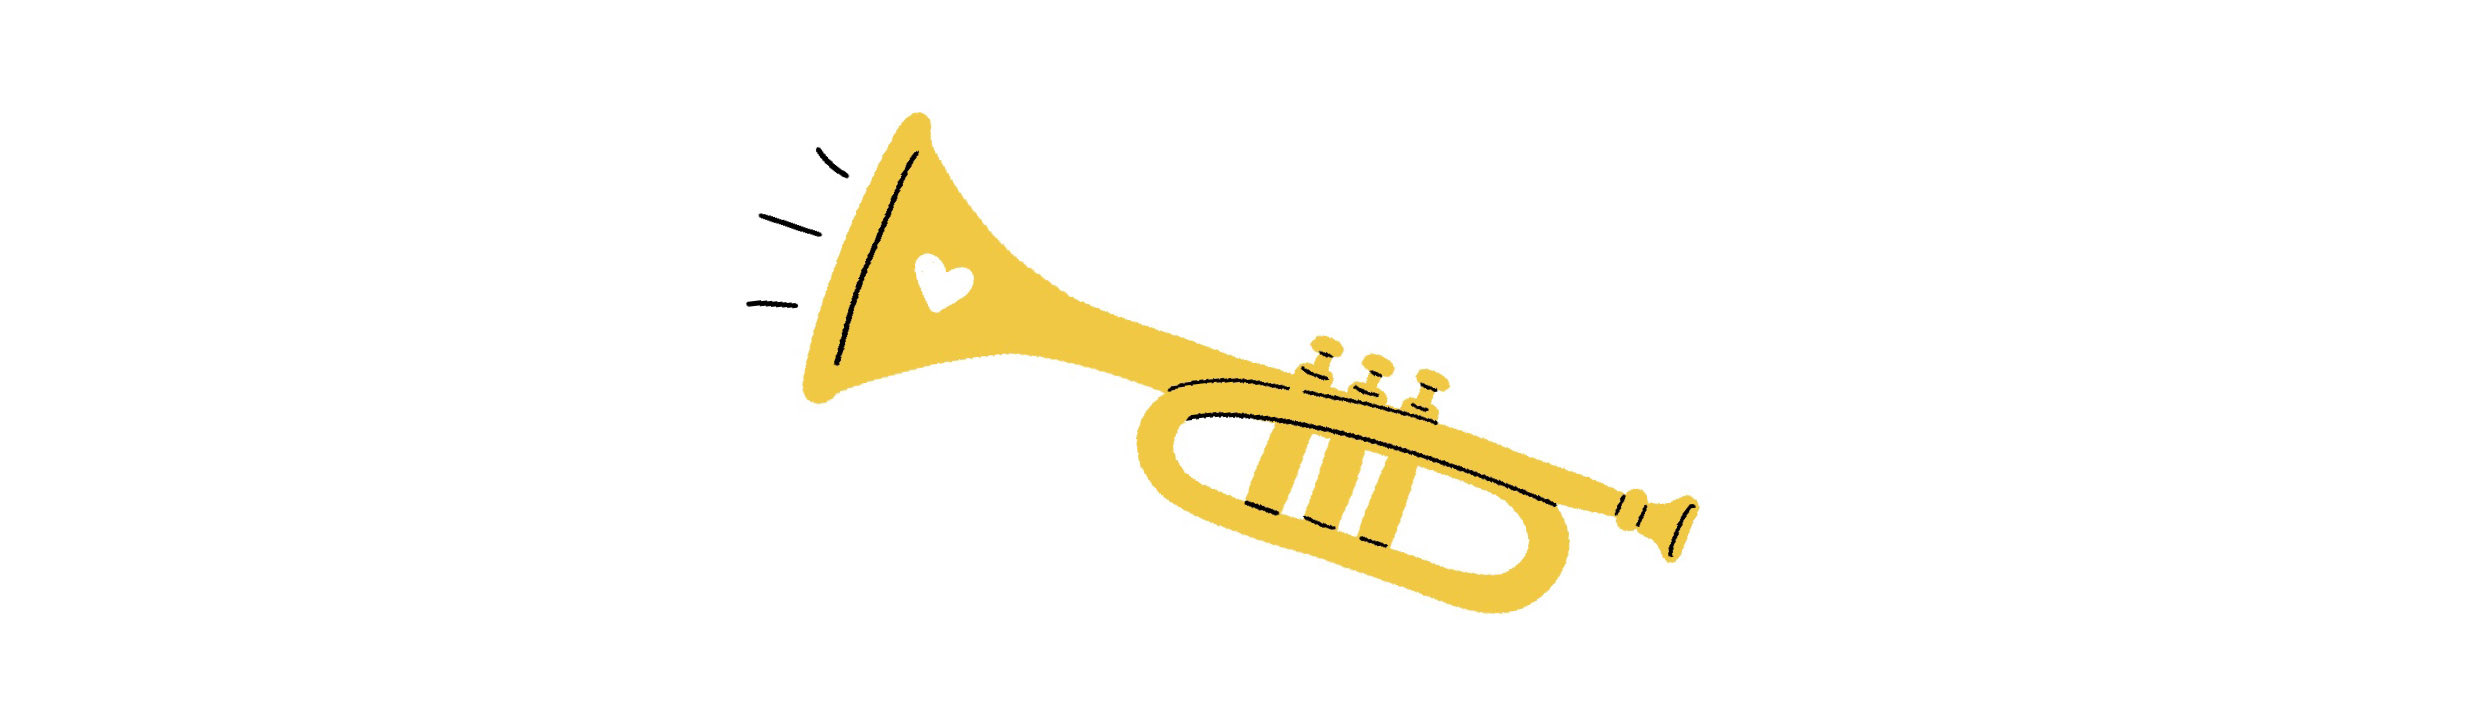 Trumpet played with love